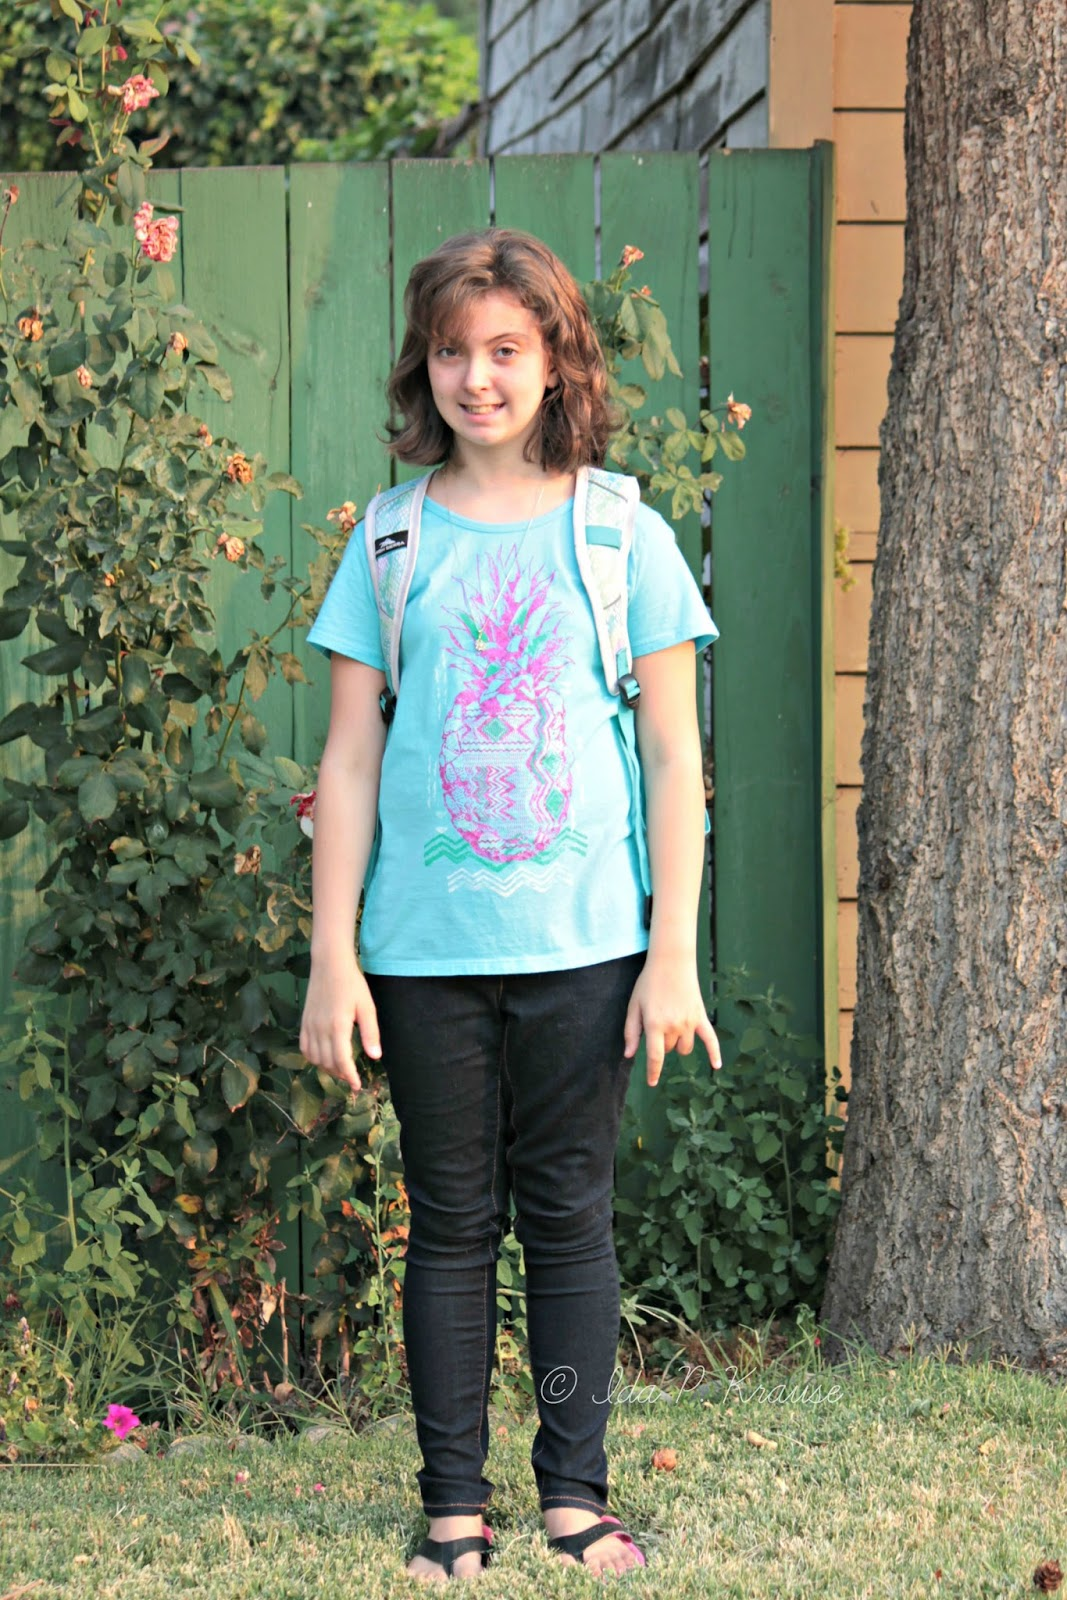 First Day Of College Picture: Wishes, Dreams & Other Things: First Day Of School